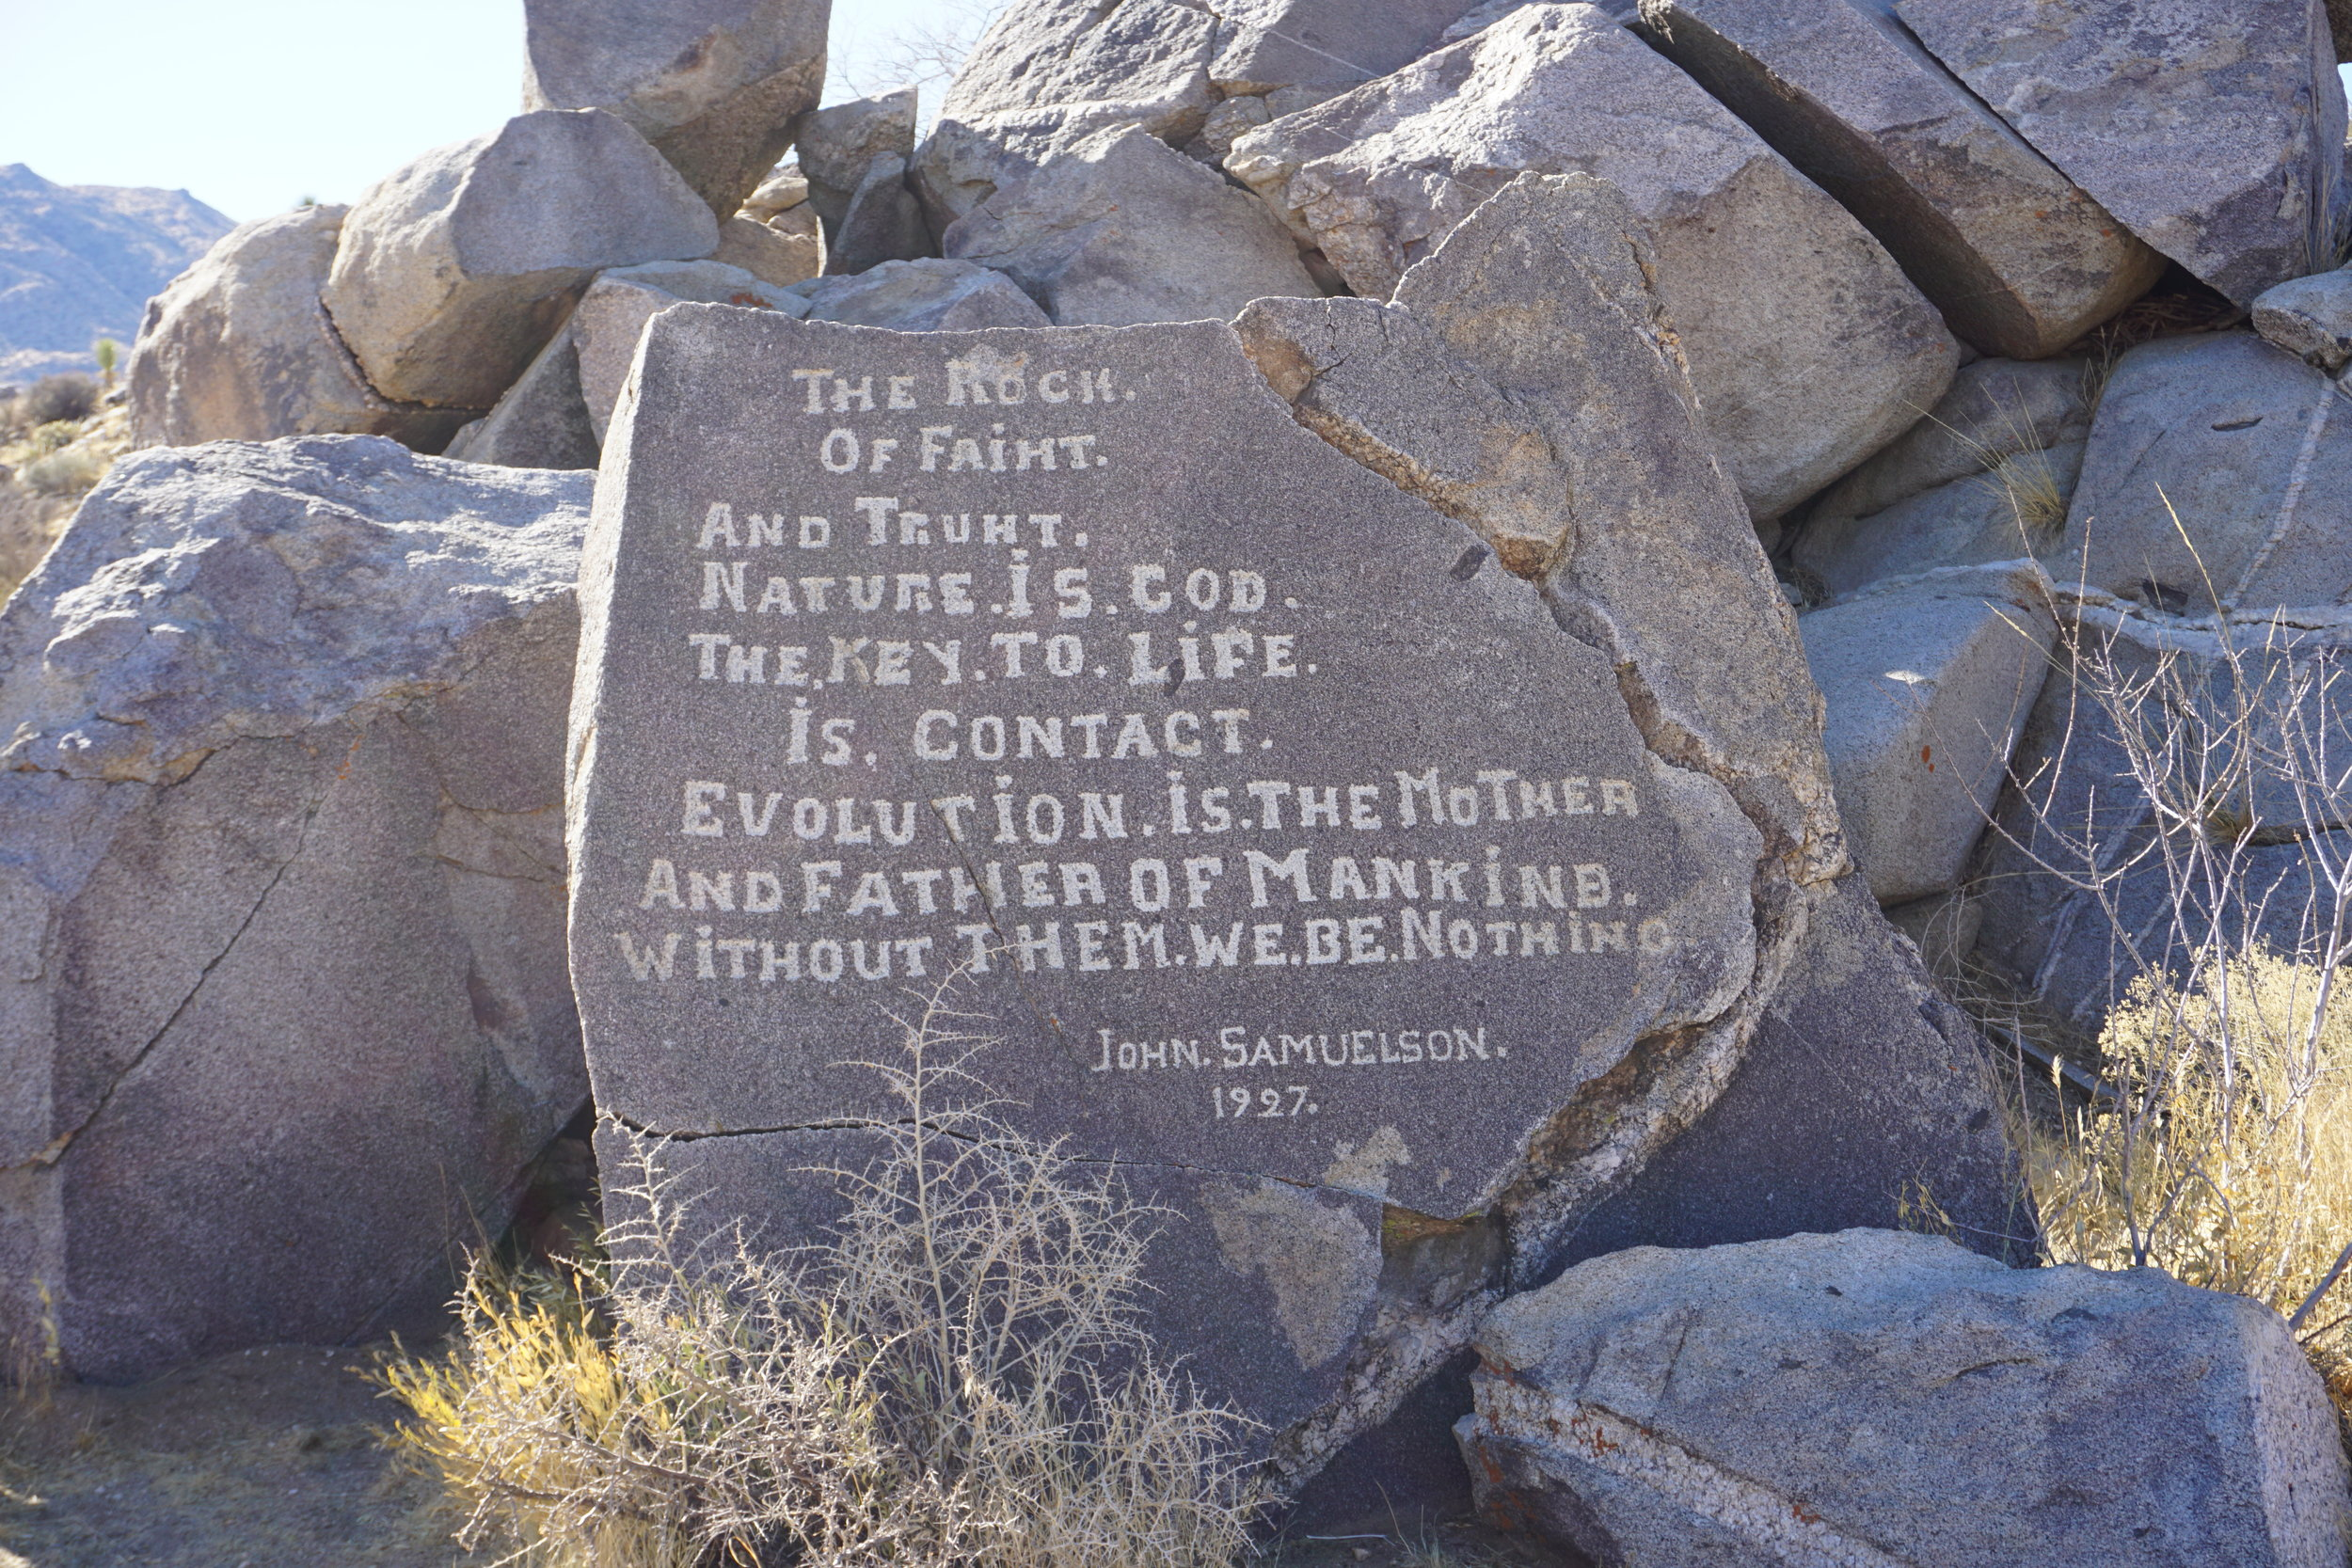 John Samuelson was an interesting character, whose story remains his enduring legacy, along with the rocks he carved.